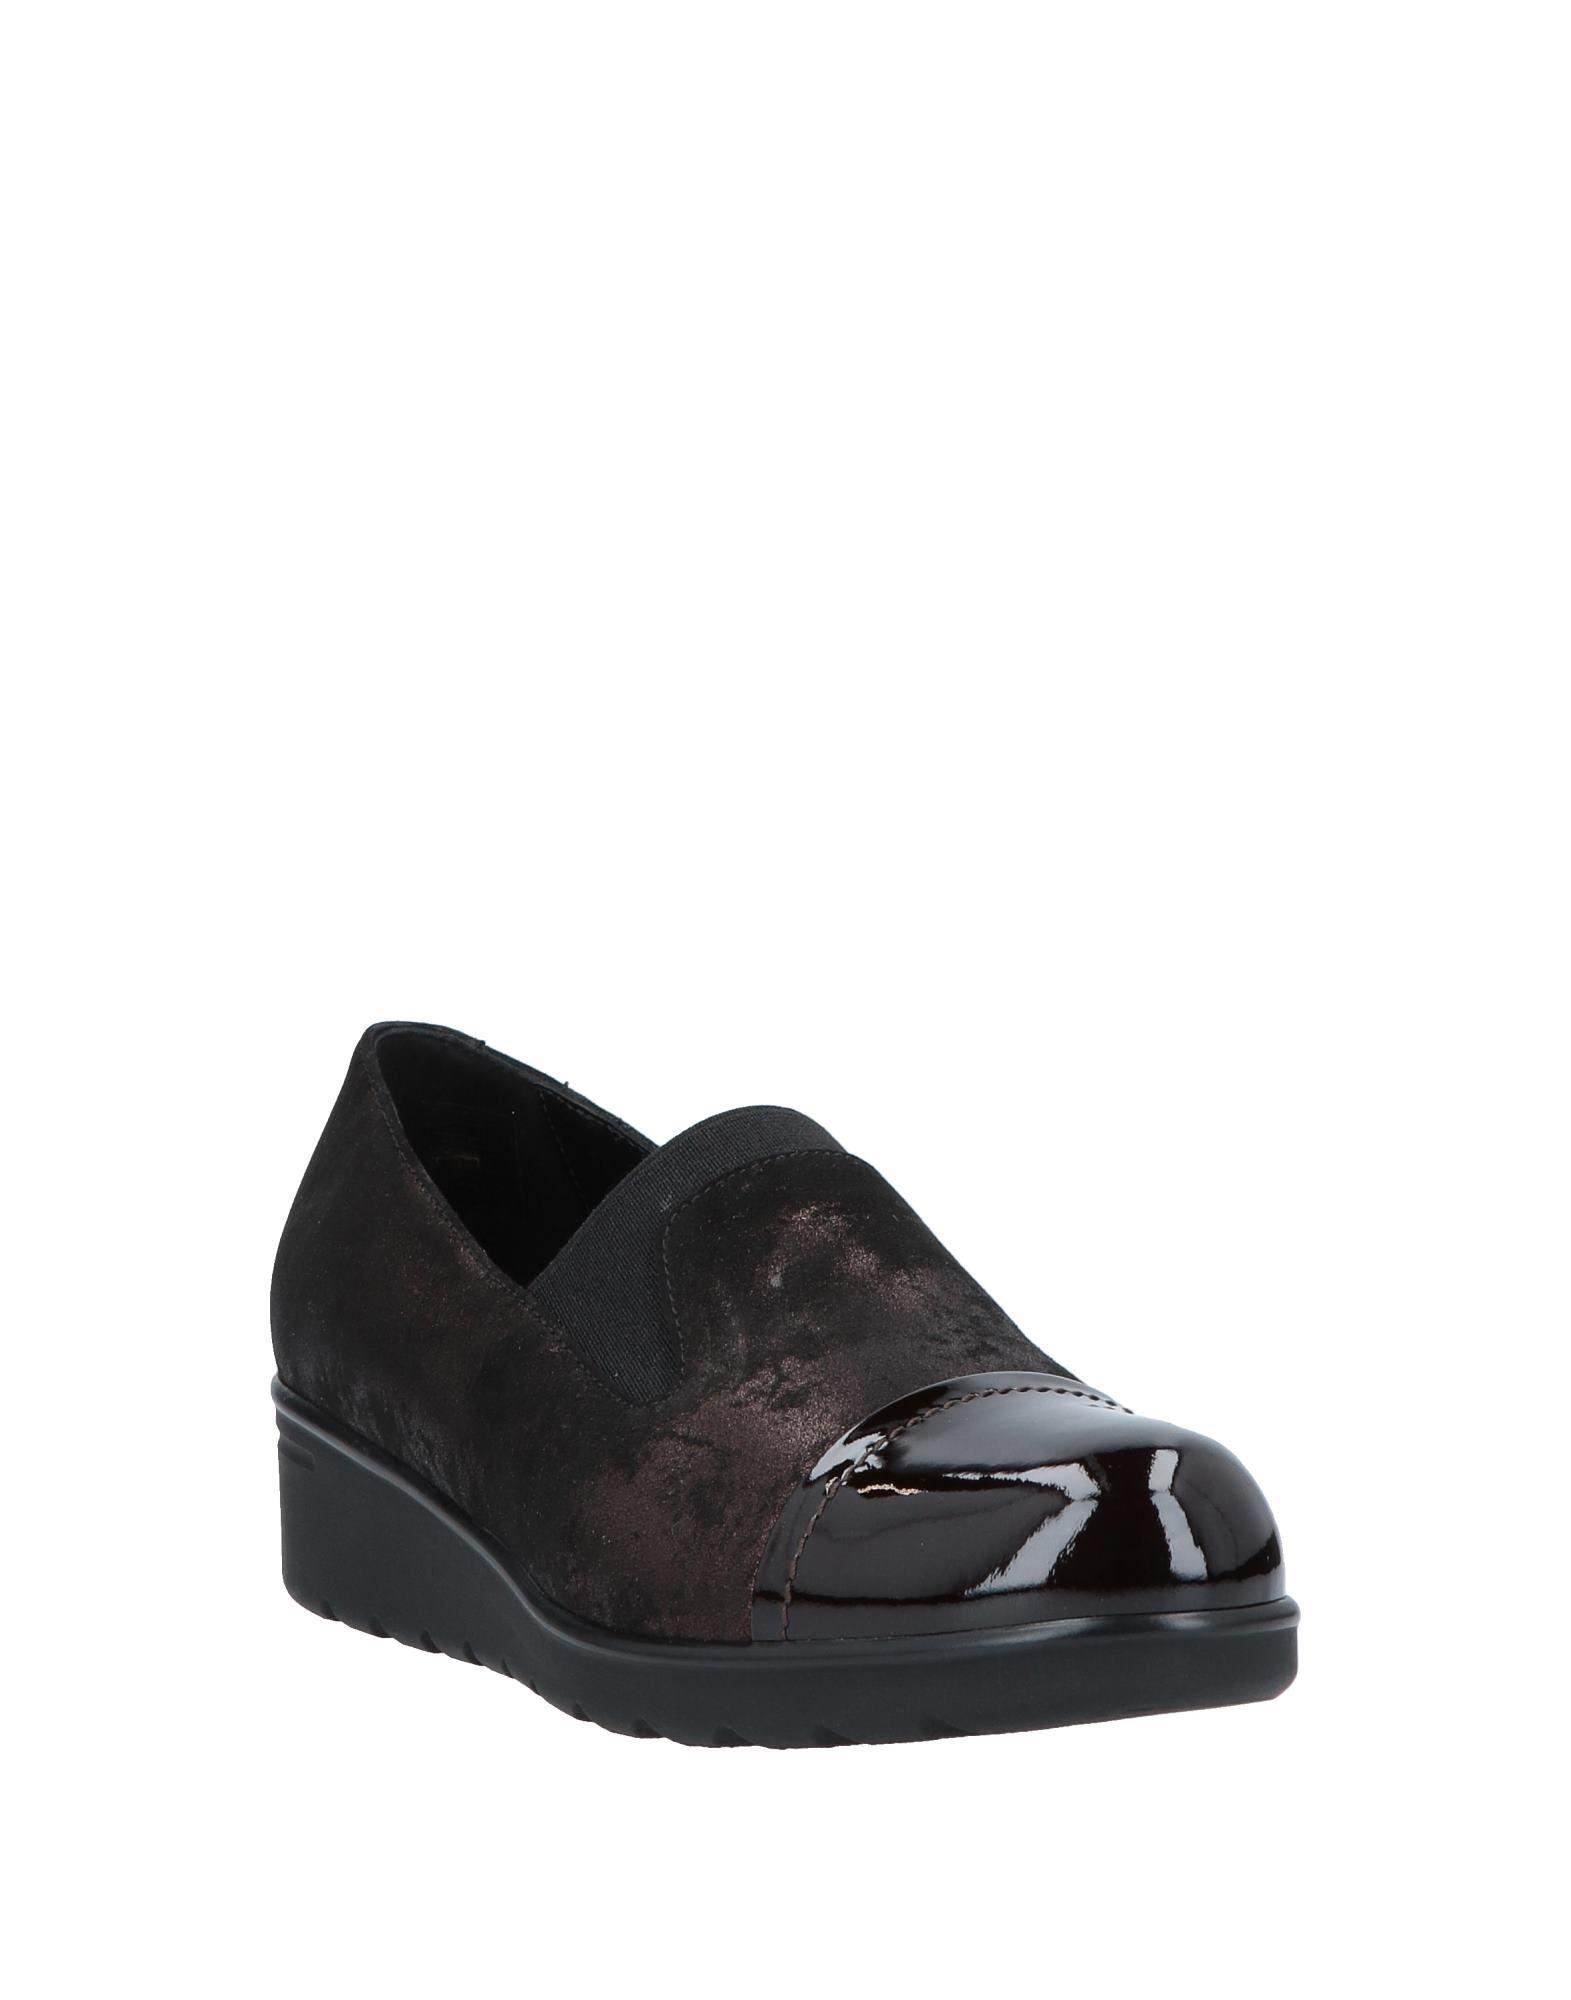 Mocasines Donna Soft de color Negro